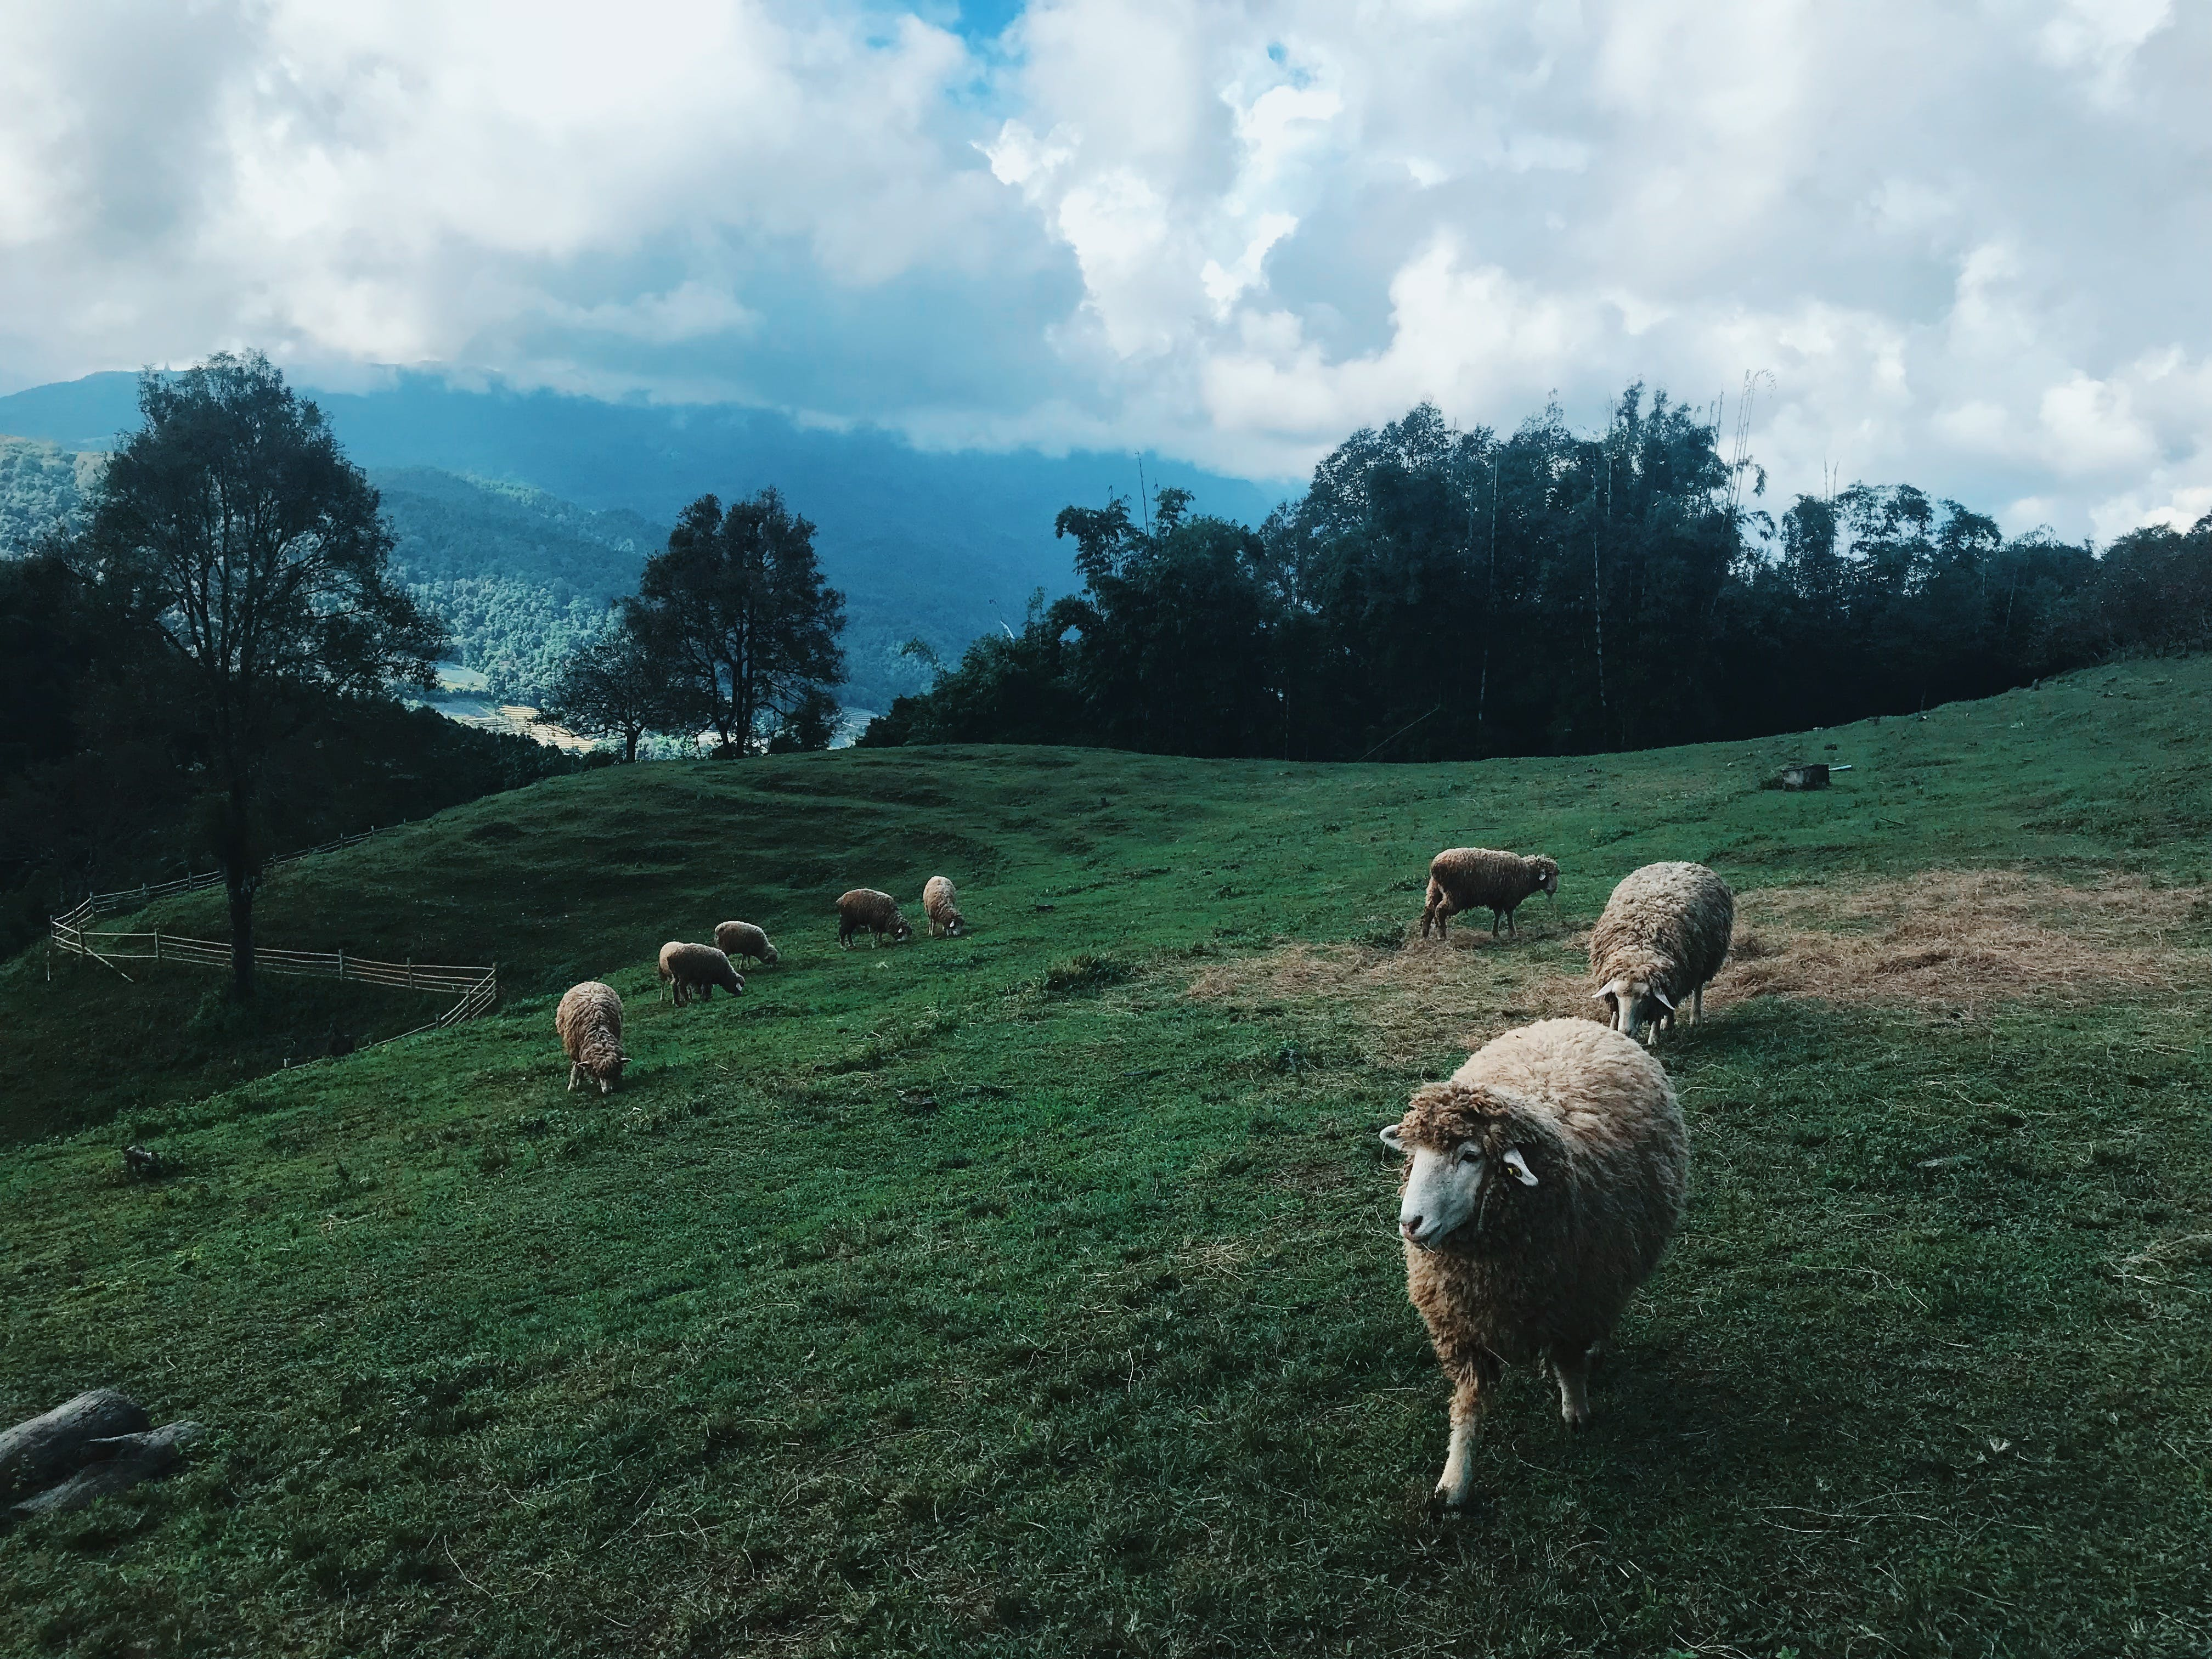 Group of Sheep at the Field